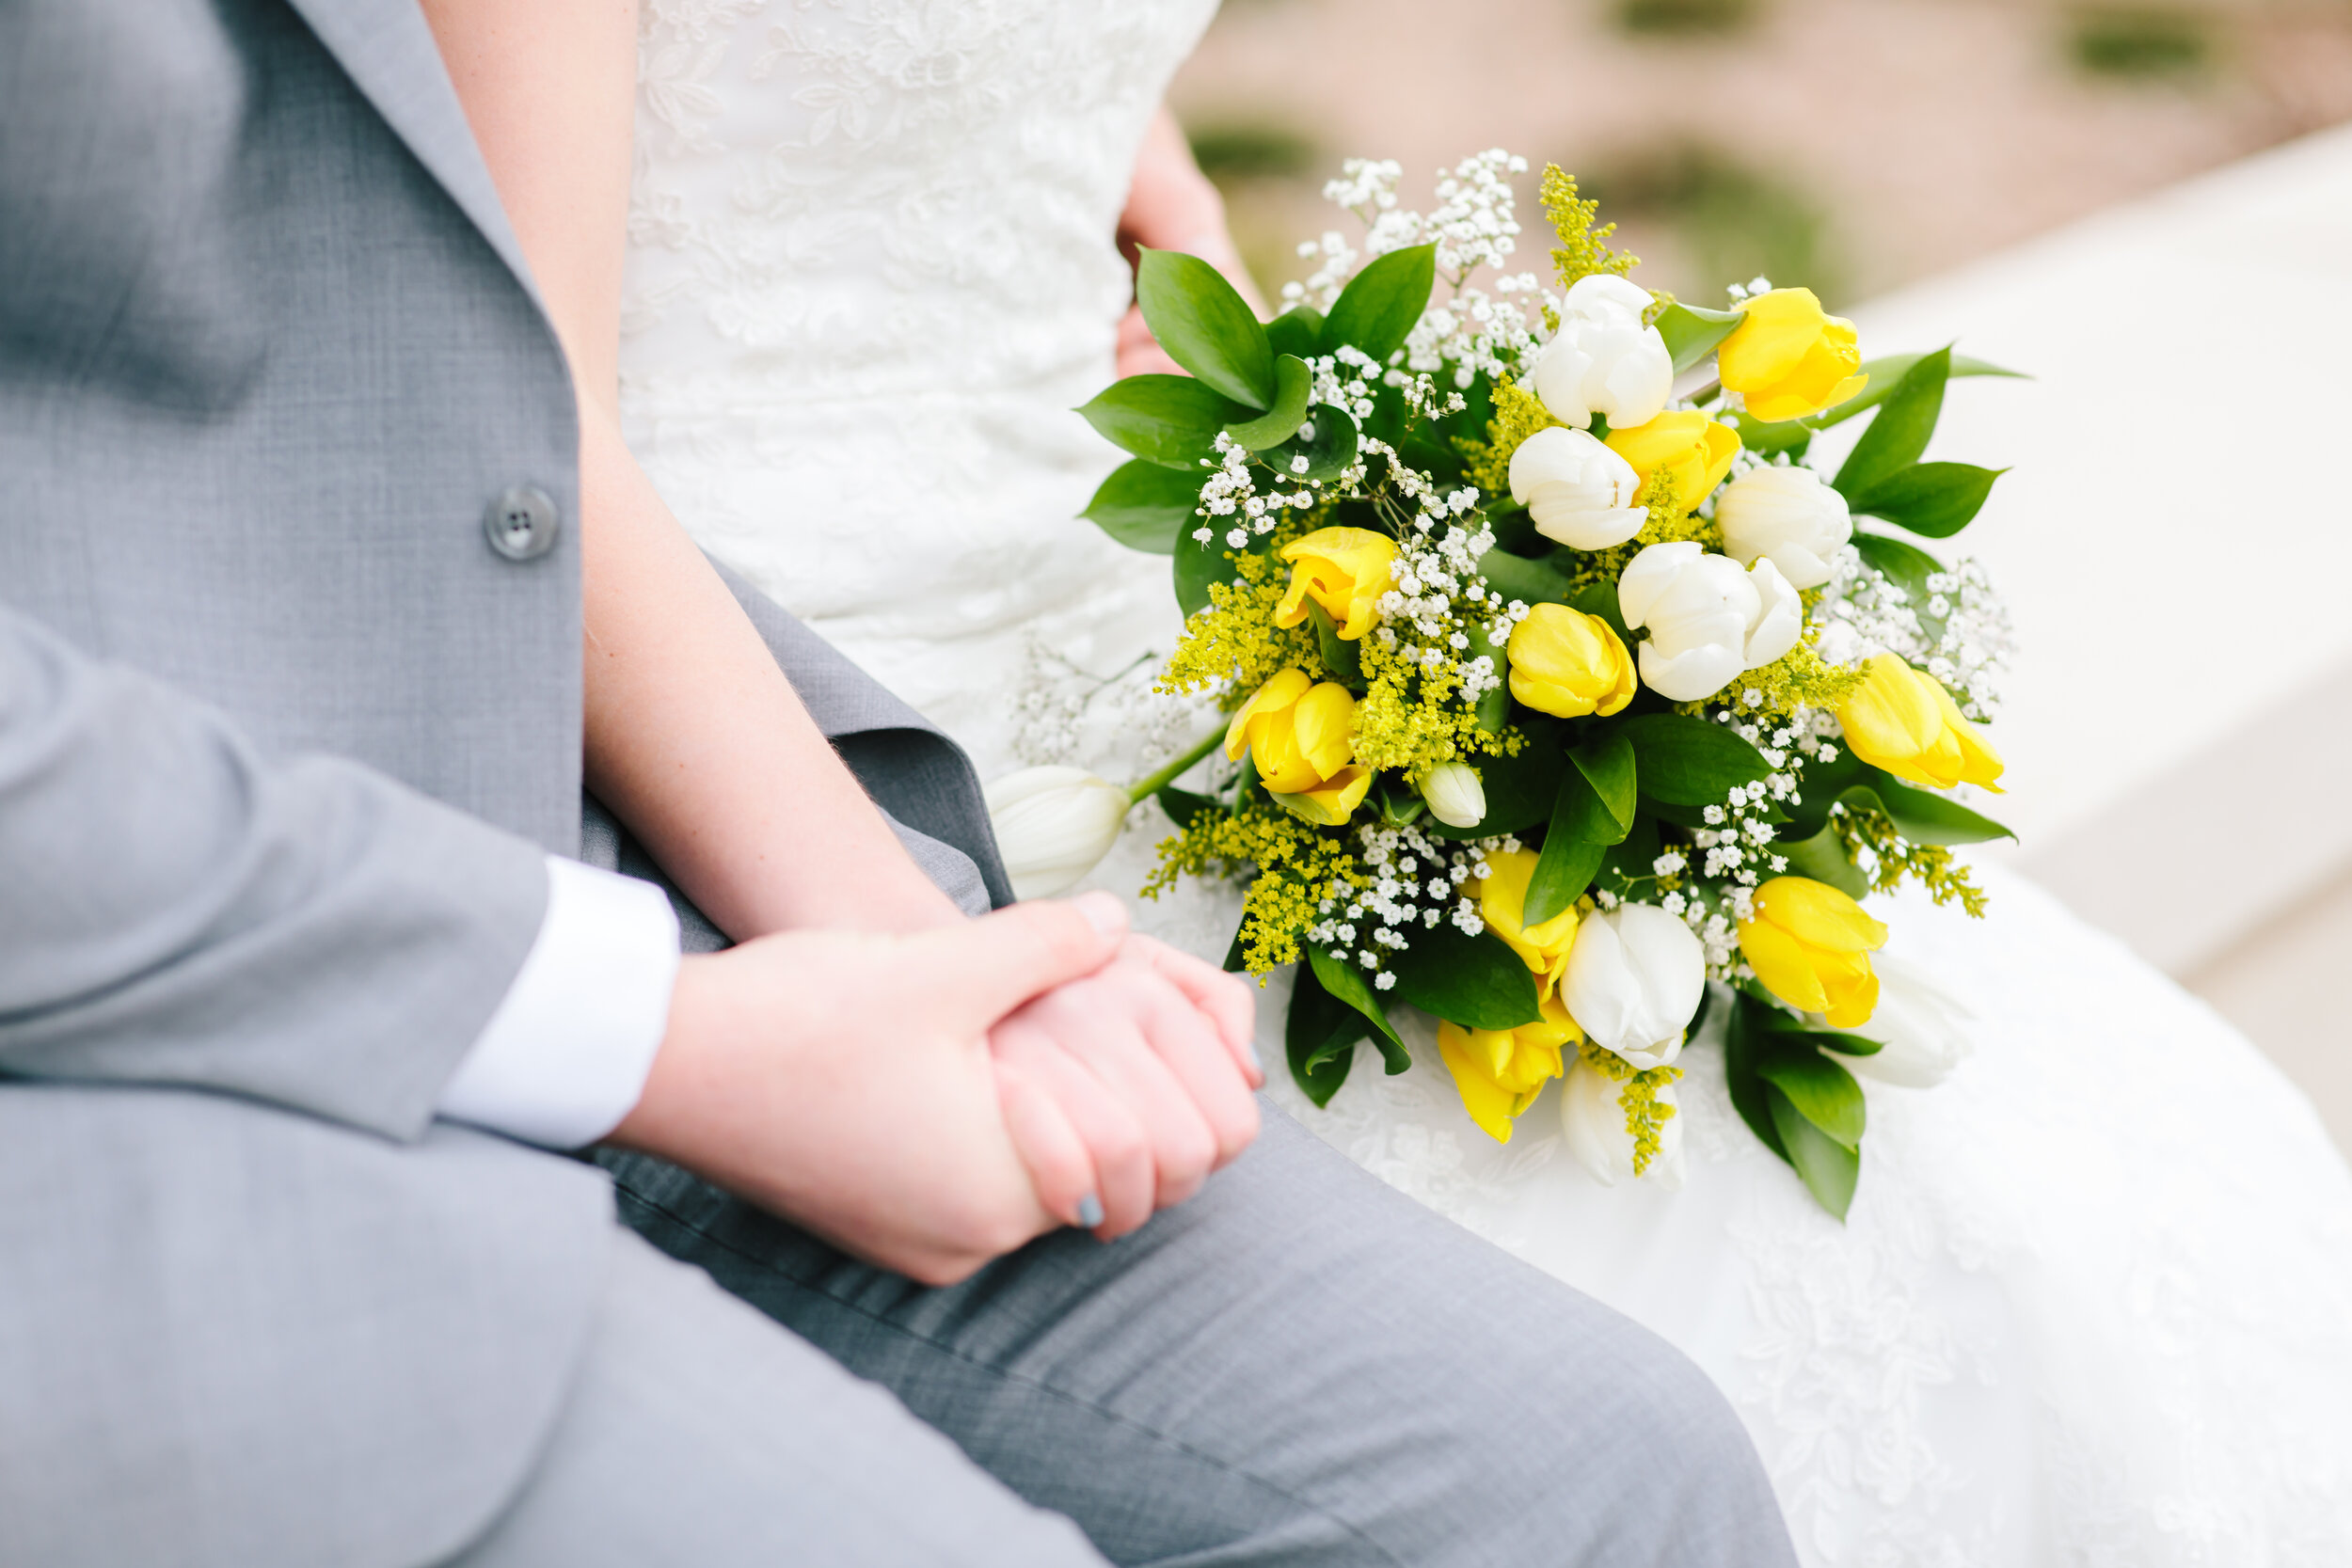 spring wedding day color inspiration happy colors unique flowers great looking grey suit lace short sleeved wedding dress inspiration wedding day goals utah couple utah professional photographer lds wedding lds couple payson temple session works for spring or summer #eternalbuddies #weddingsession #weddinginspo #ldswedding #ldsbride #couplegoals #paysontemple #temple #profressionalphotographer #utah #love